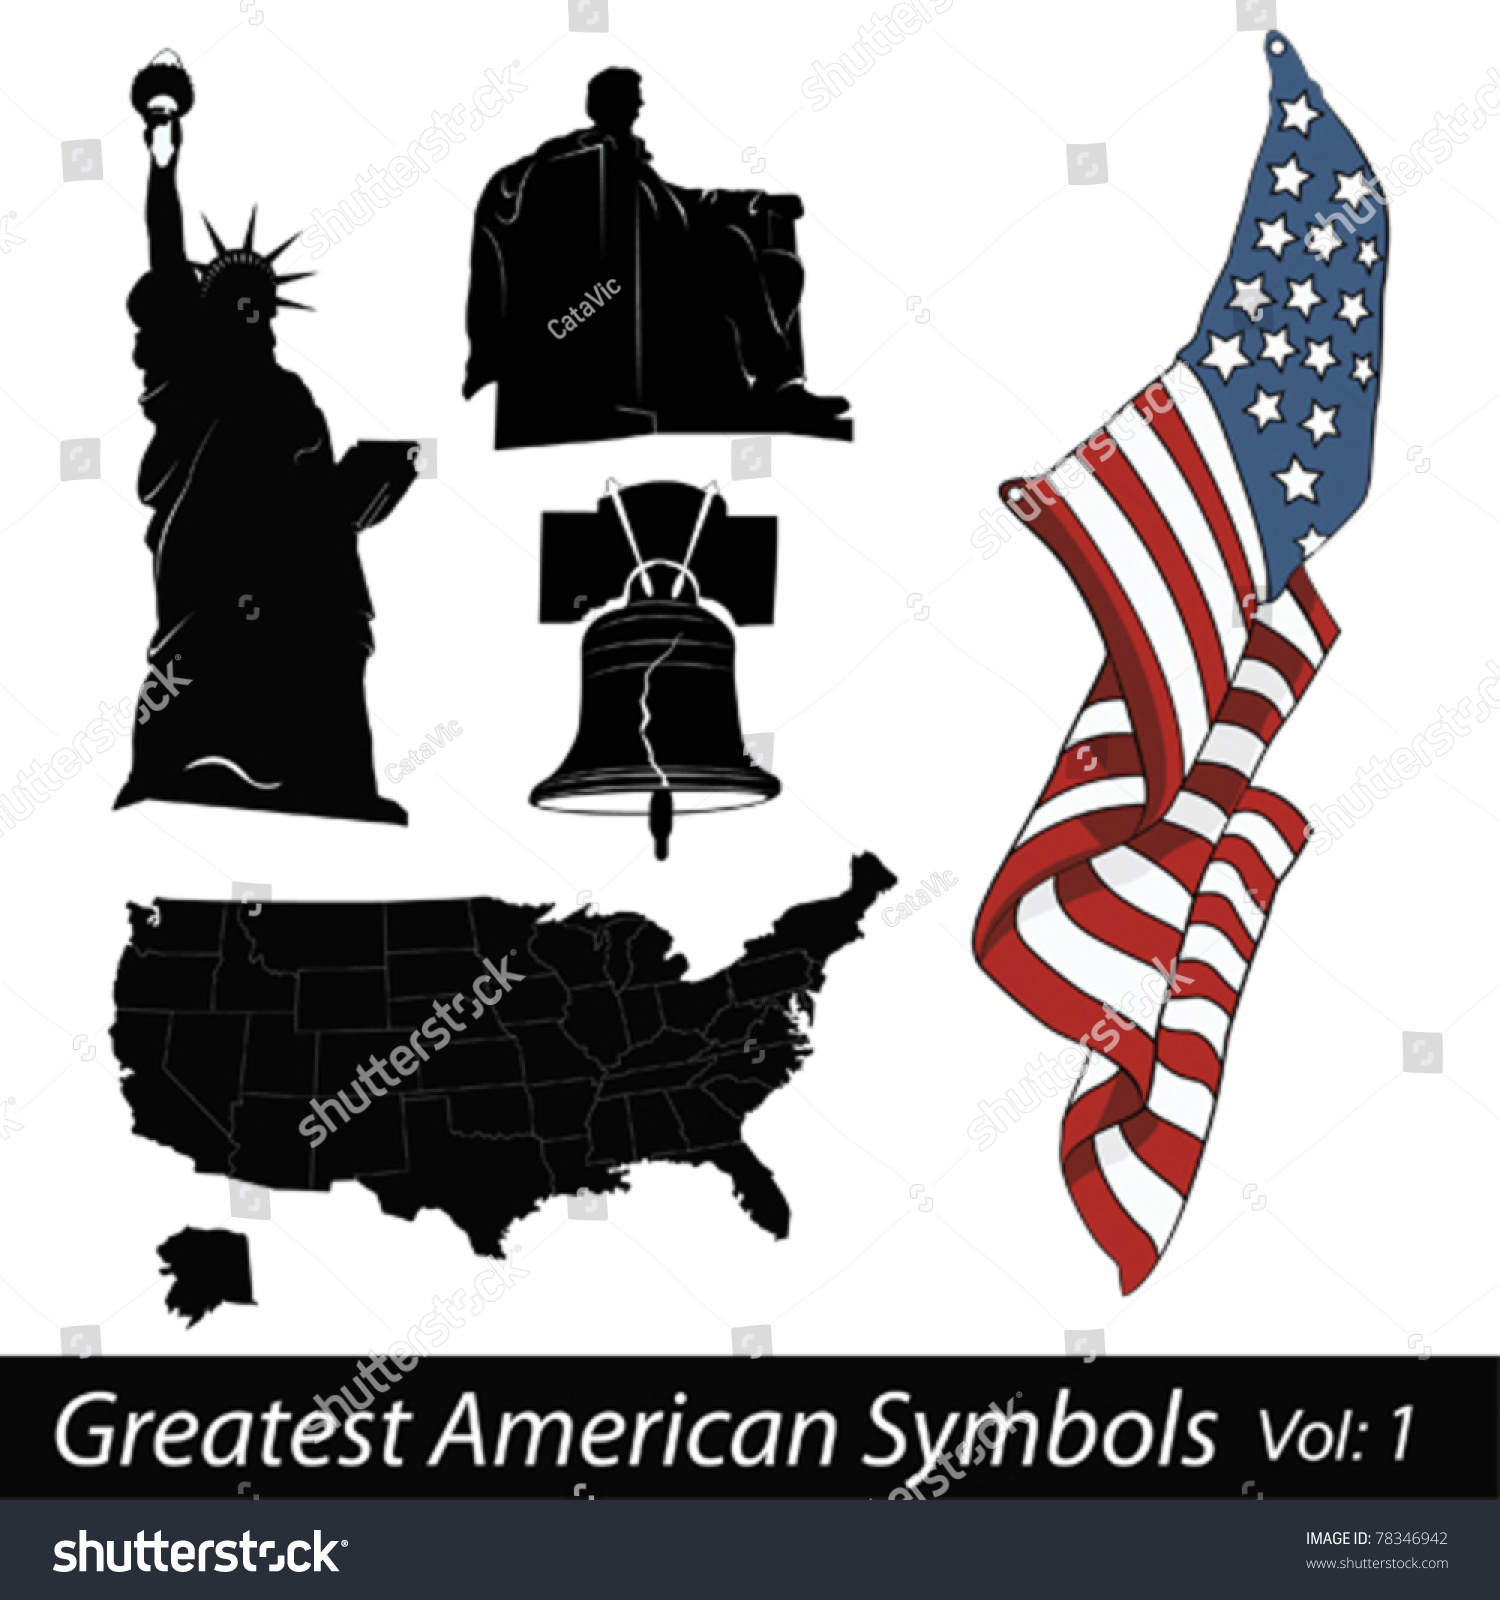 an analysis of the american flag symbols Introduction to a semiotic analysis the confederate flag is one of the most controversial, inflammatory icons of american symbols, like the confederate flag.